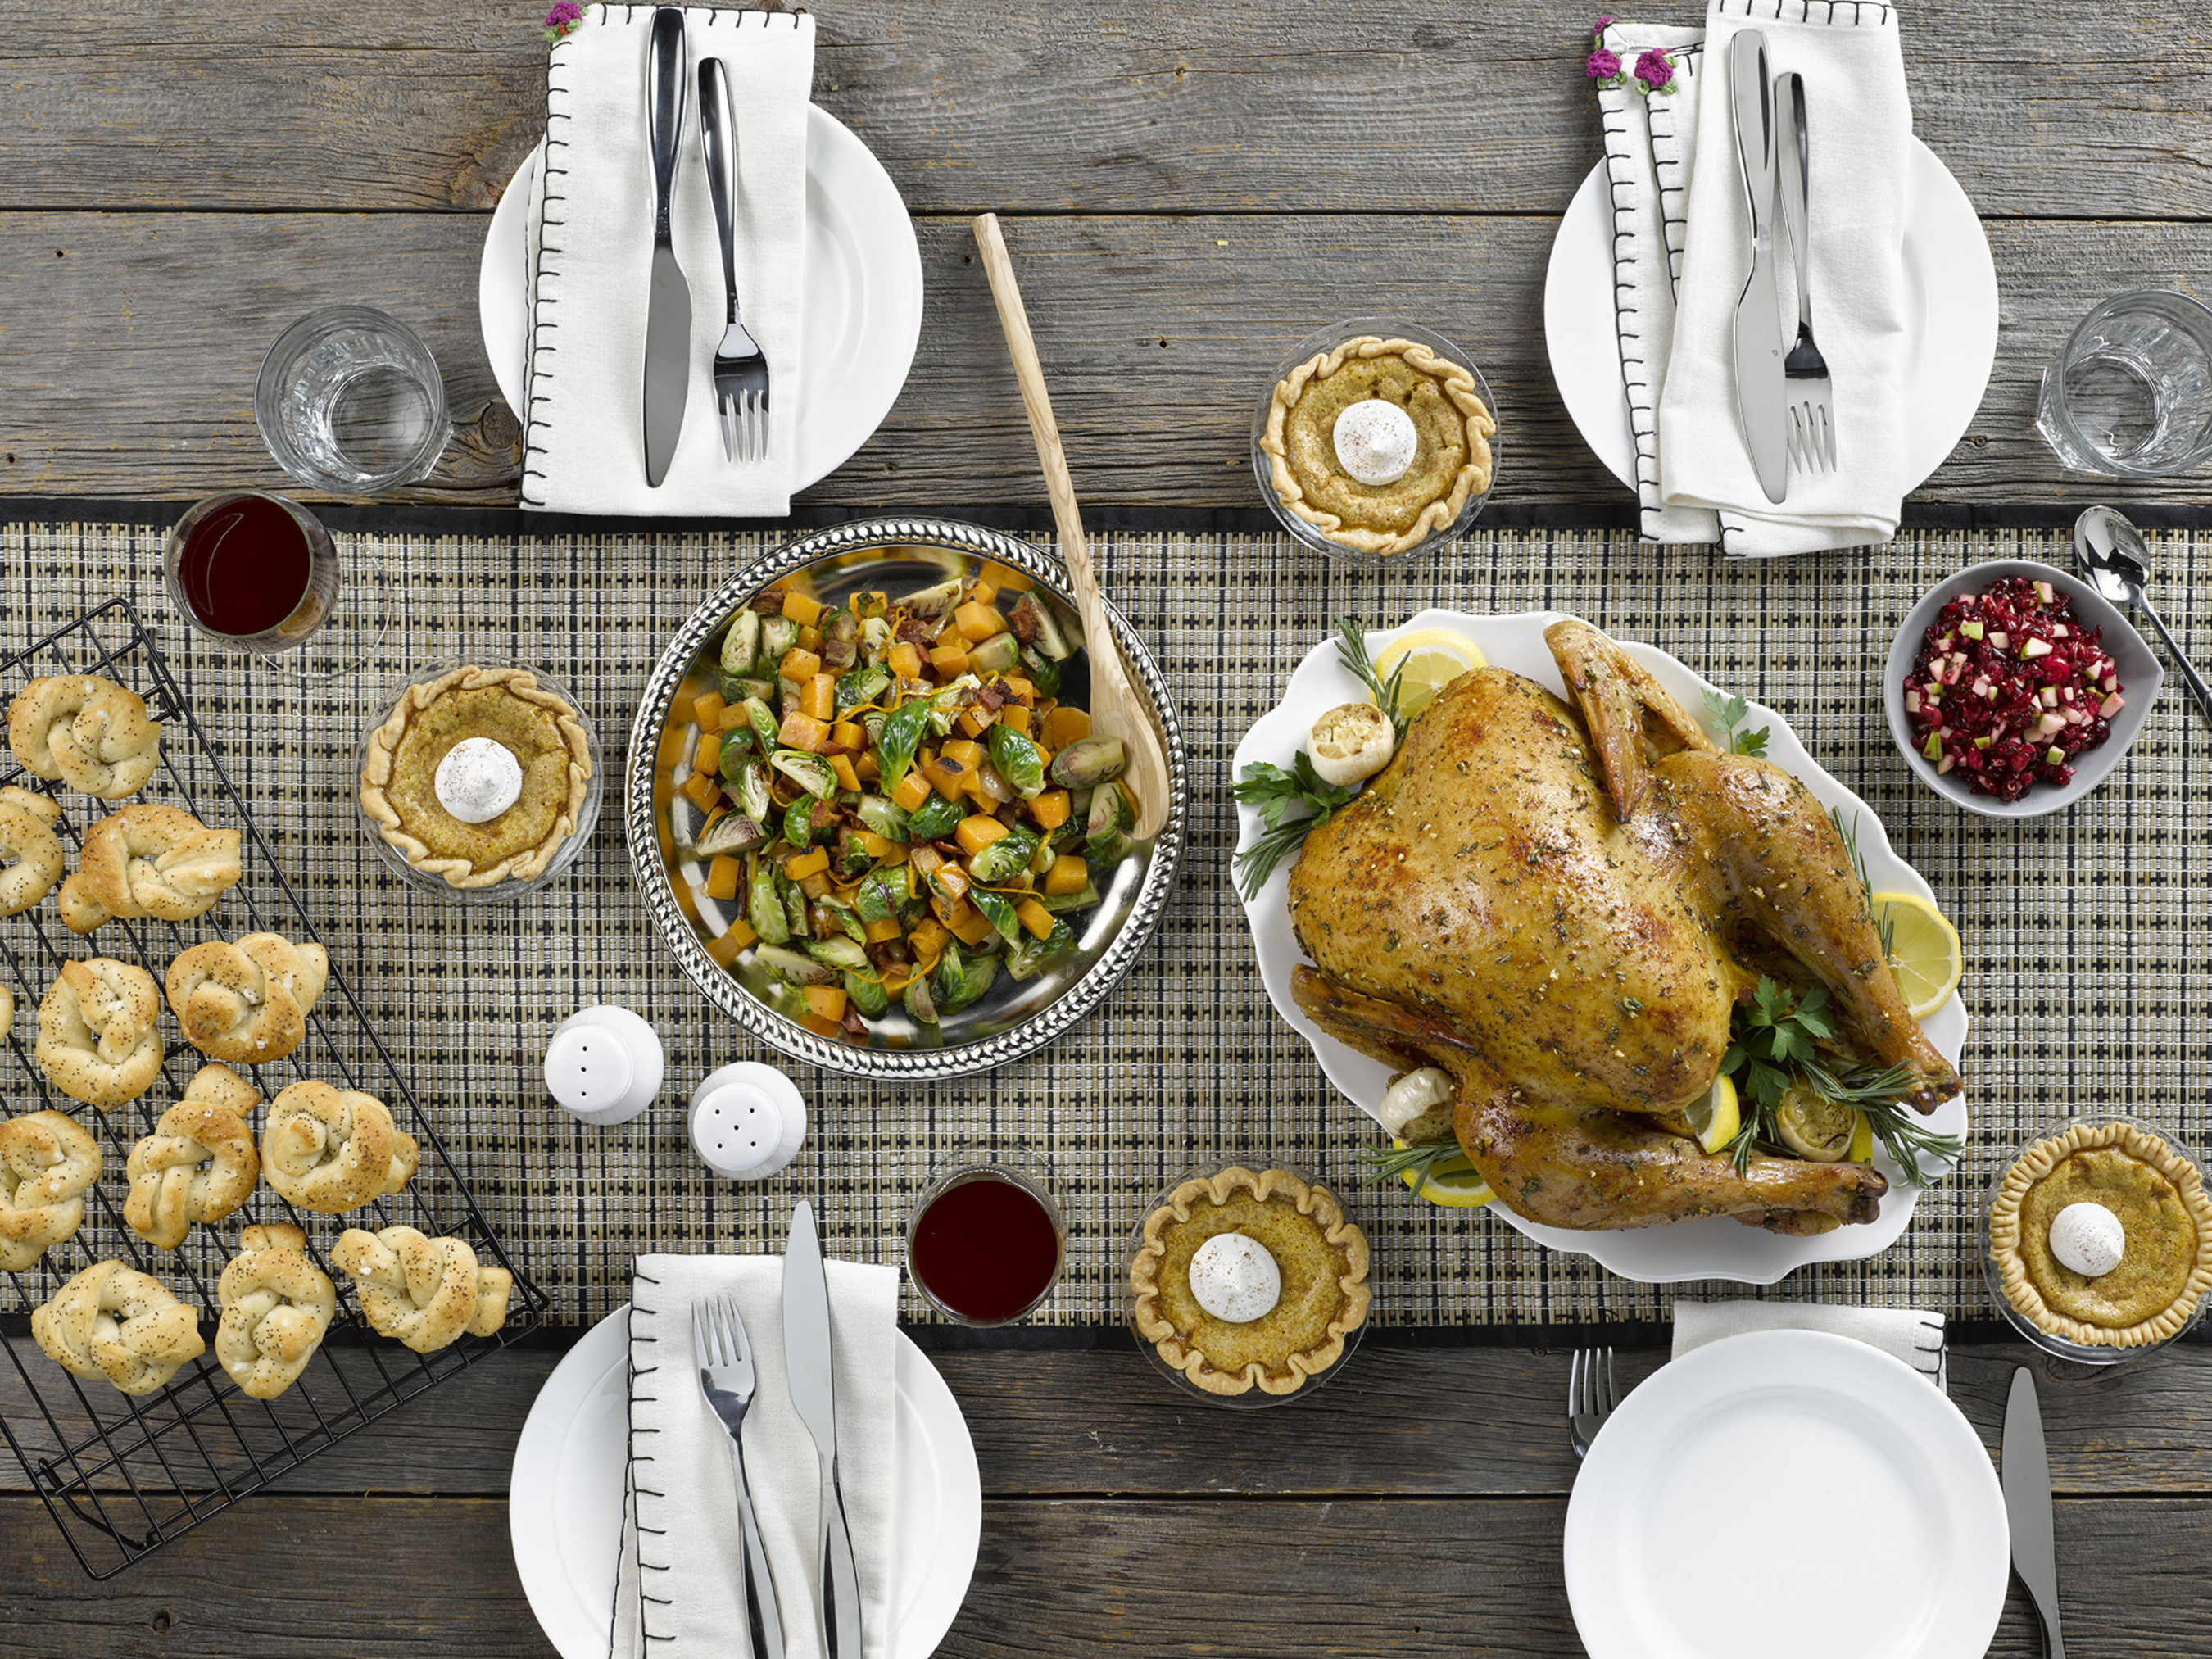 Jennie-O Inspires Modern Holiday Hosts To Entertain With Ease And Convenience In 2015